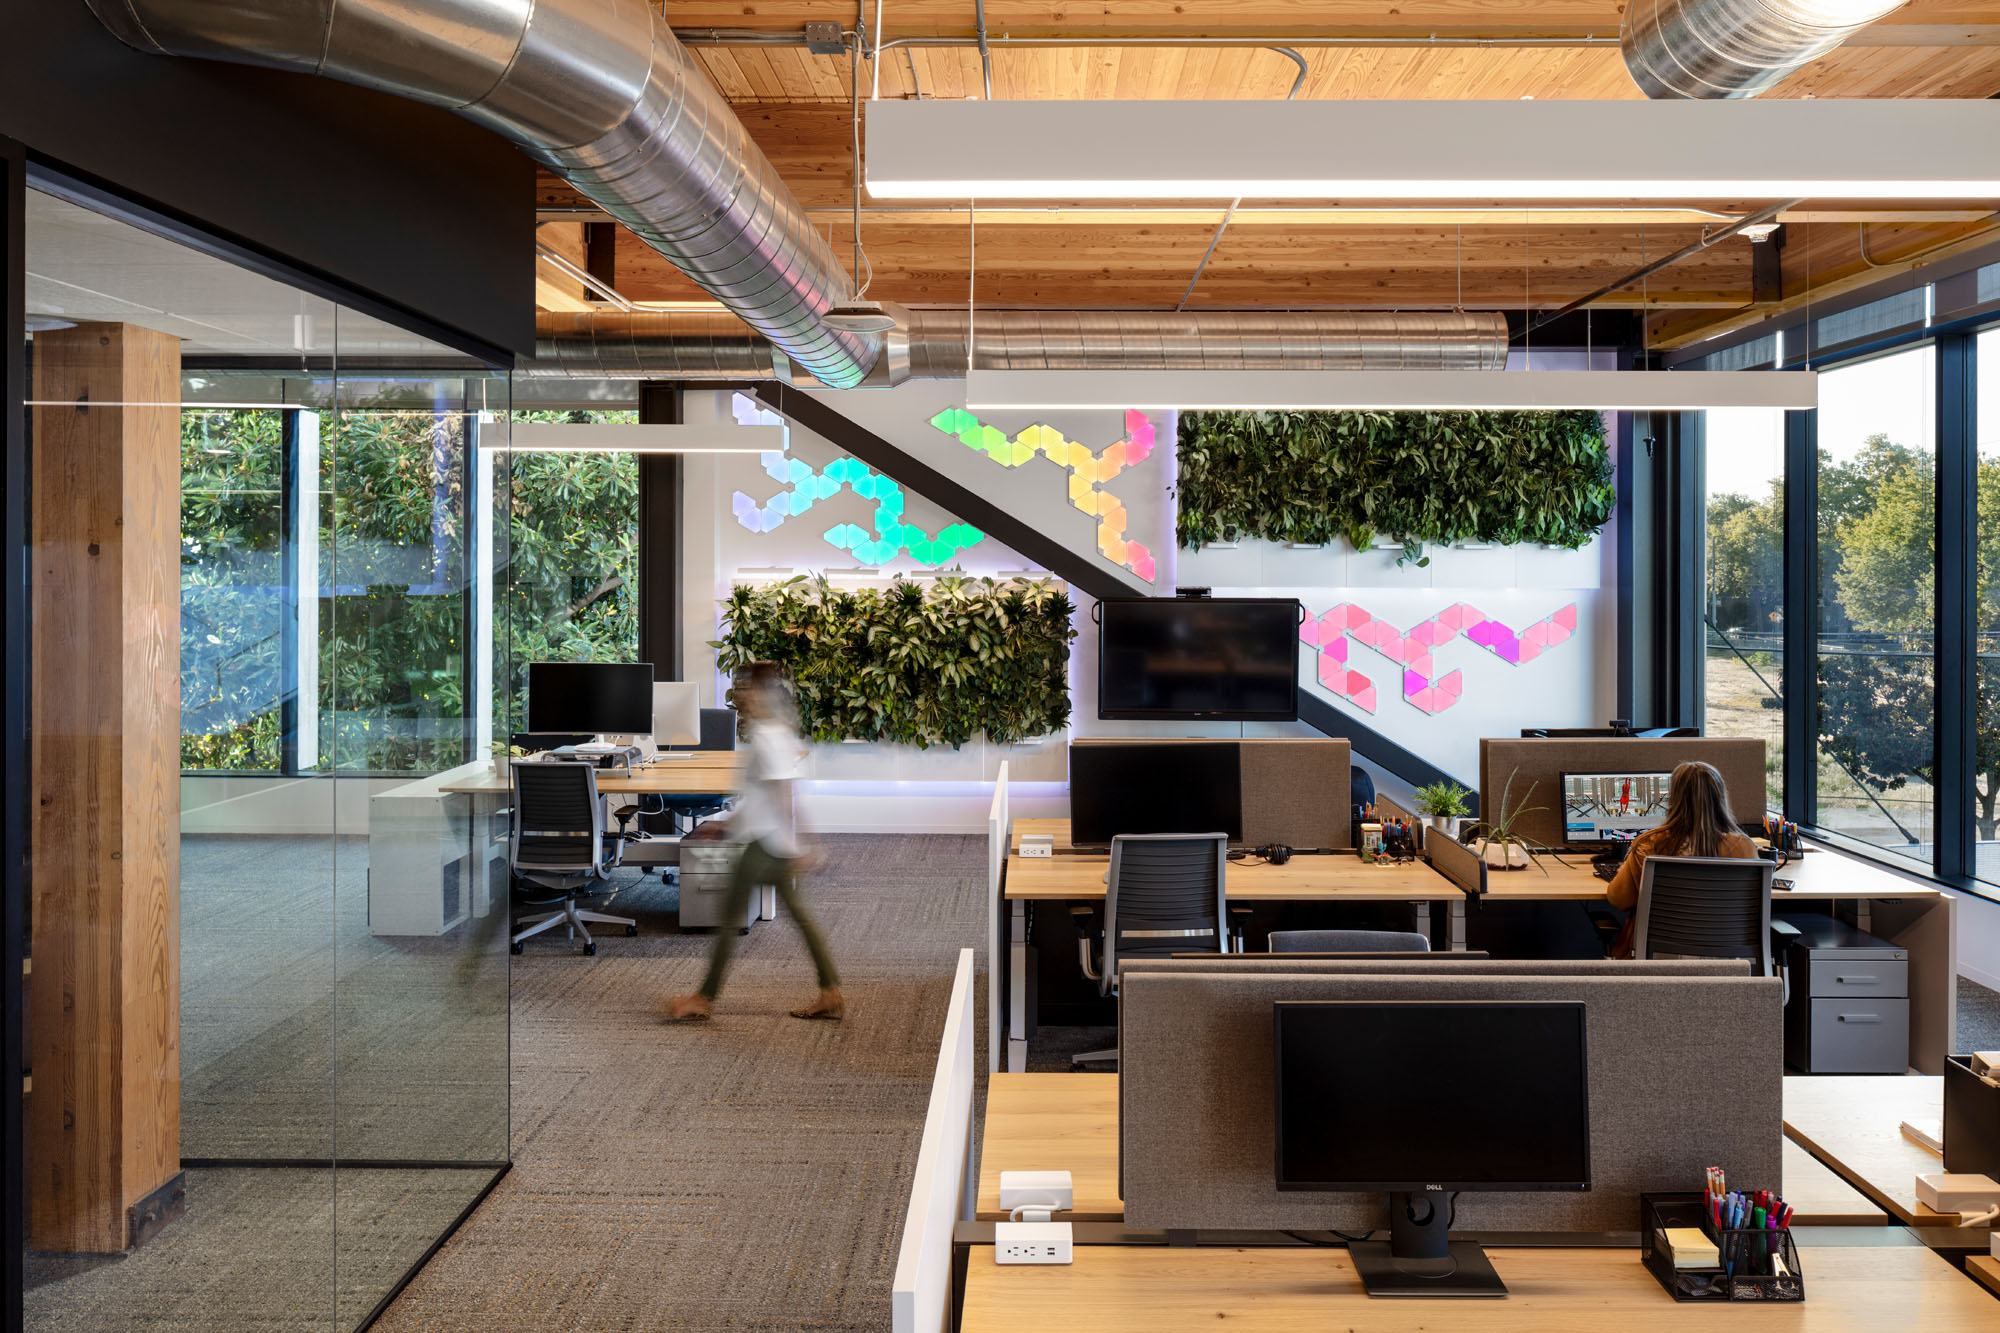 Designing the Post-COVID Workplace